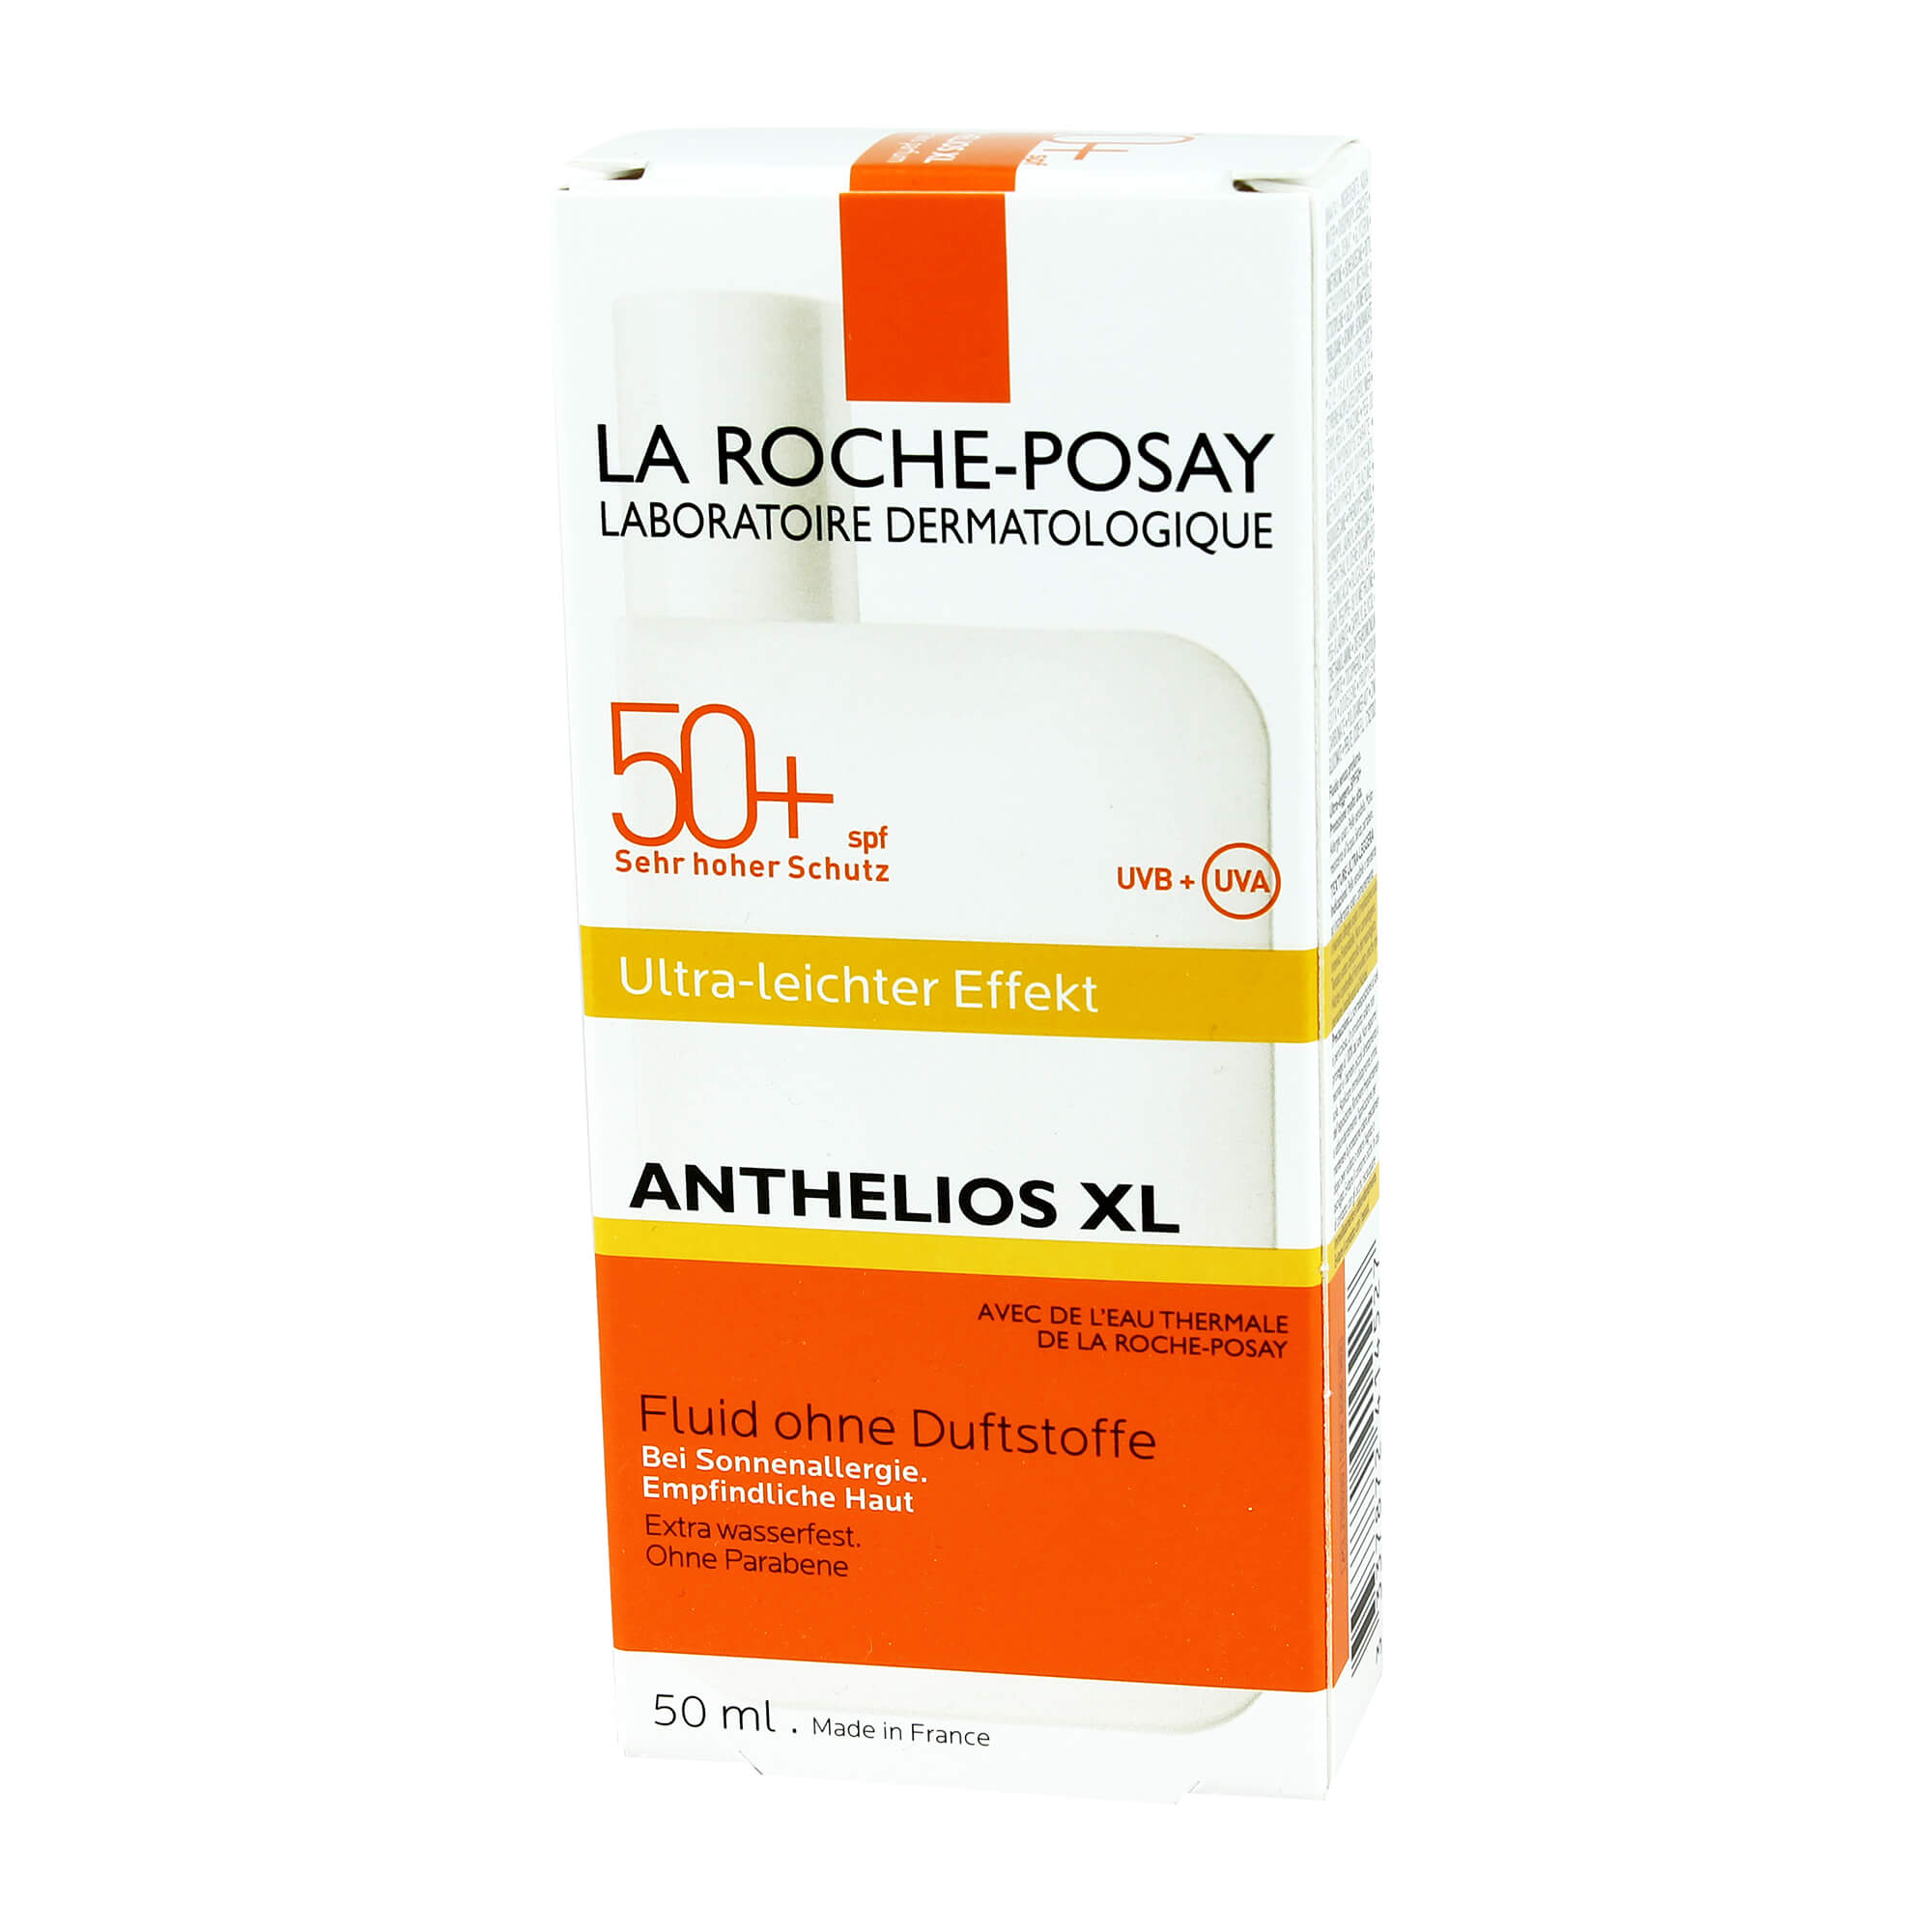 Roche Posay Anthelios XL Fluid